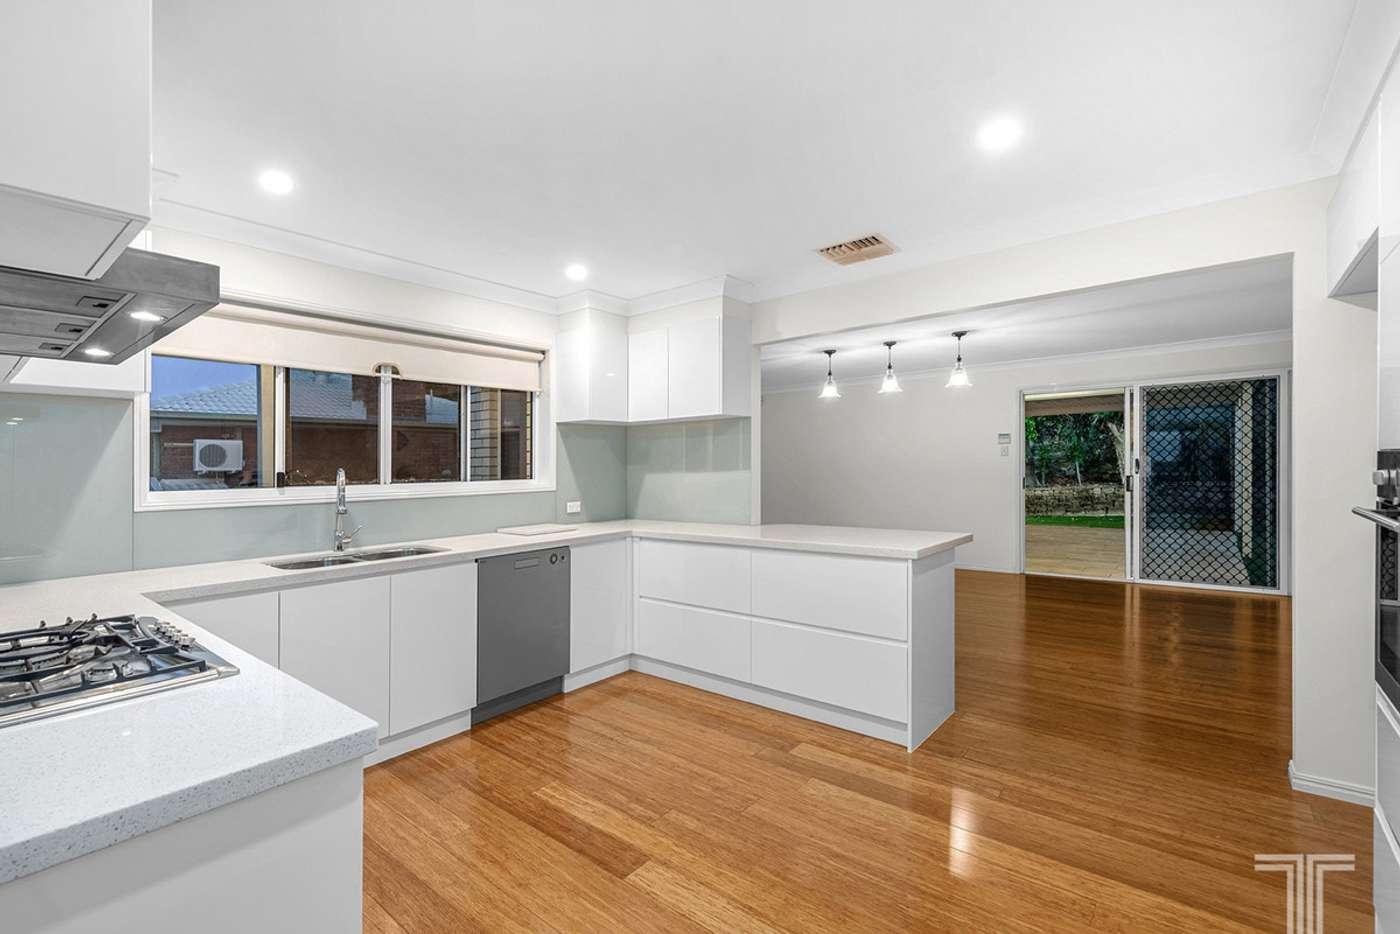 Fifth view of Homely house listing, 8 Gyranda Street, Carina Heights QLD 4152